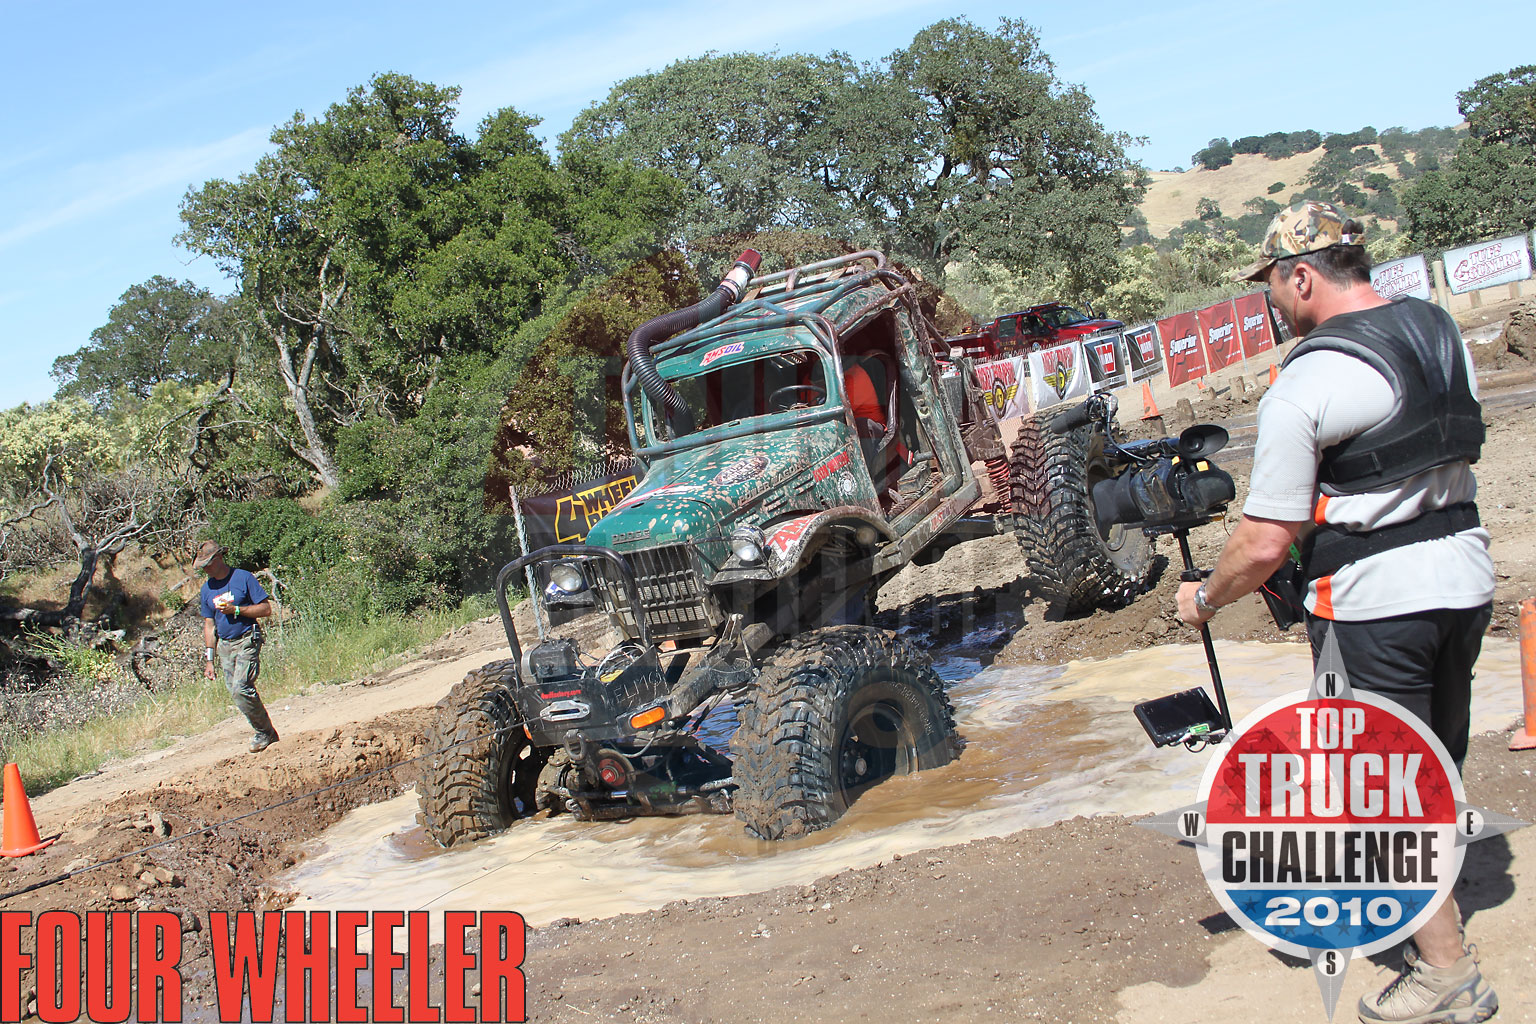 2010 Top Truck Challenge Frame Twister Roger King 1964 Dodge Wm300 Power Wagon